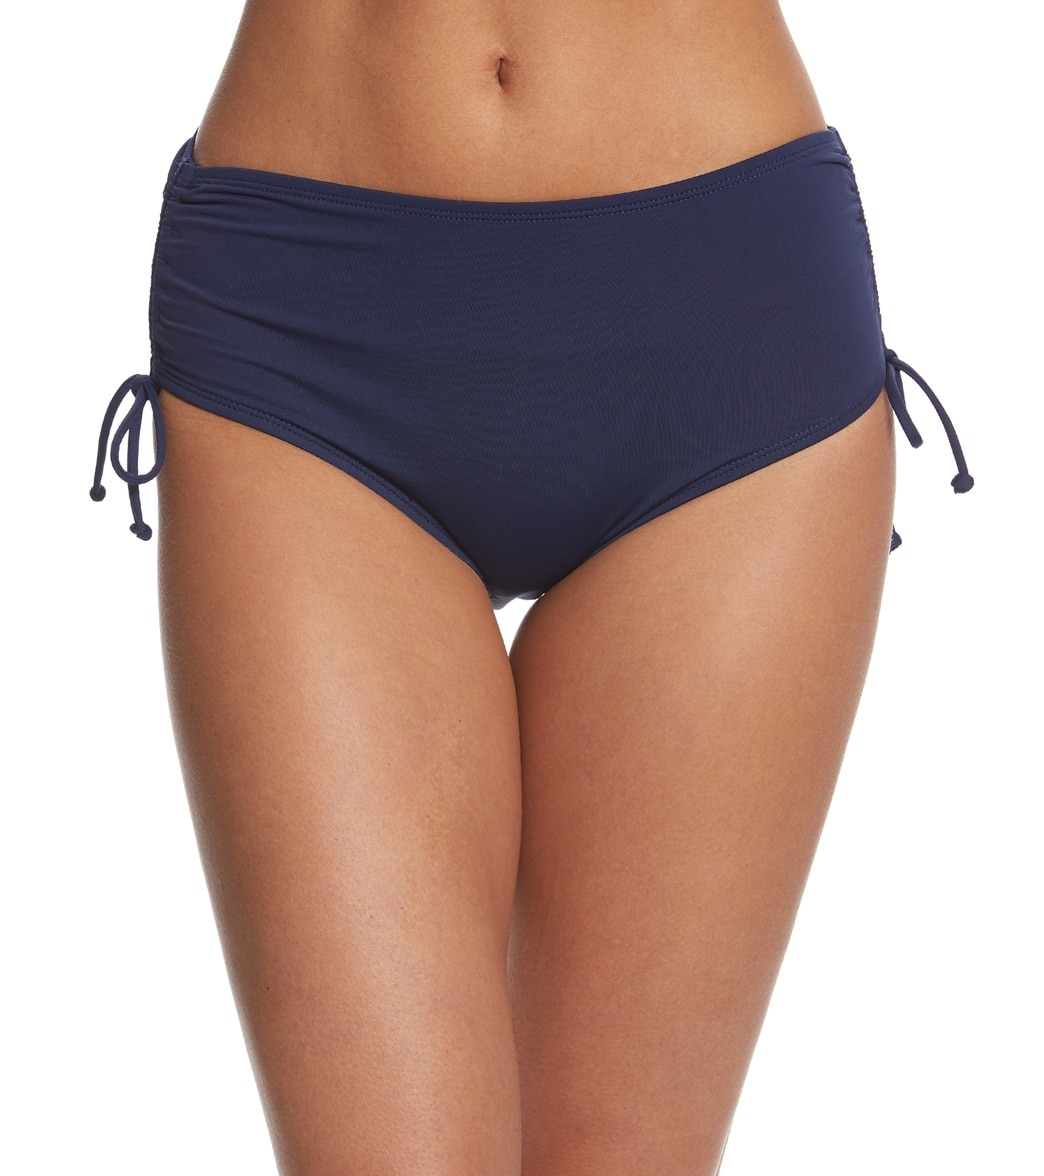 992a631a676 Beach House Solid Hayden High Waisted Adjustable Side Bikini Bottom at  SwimOutlet.com